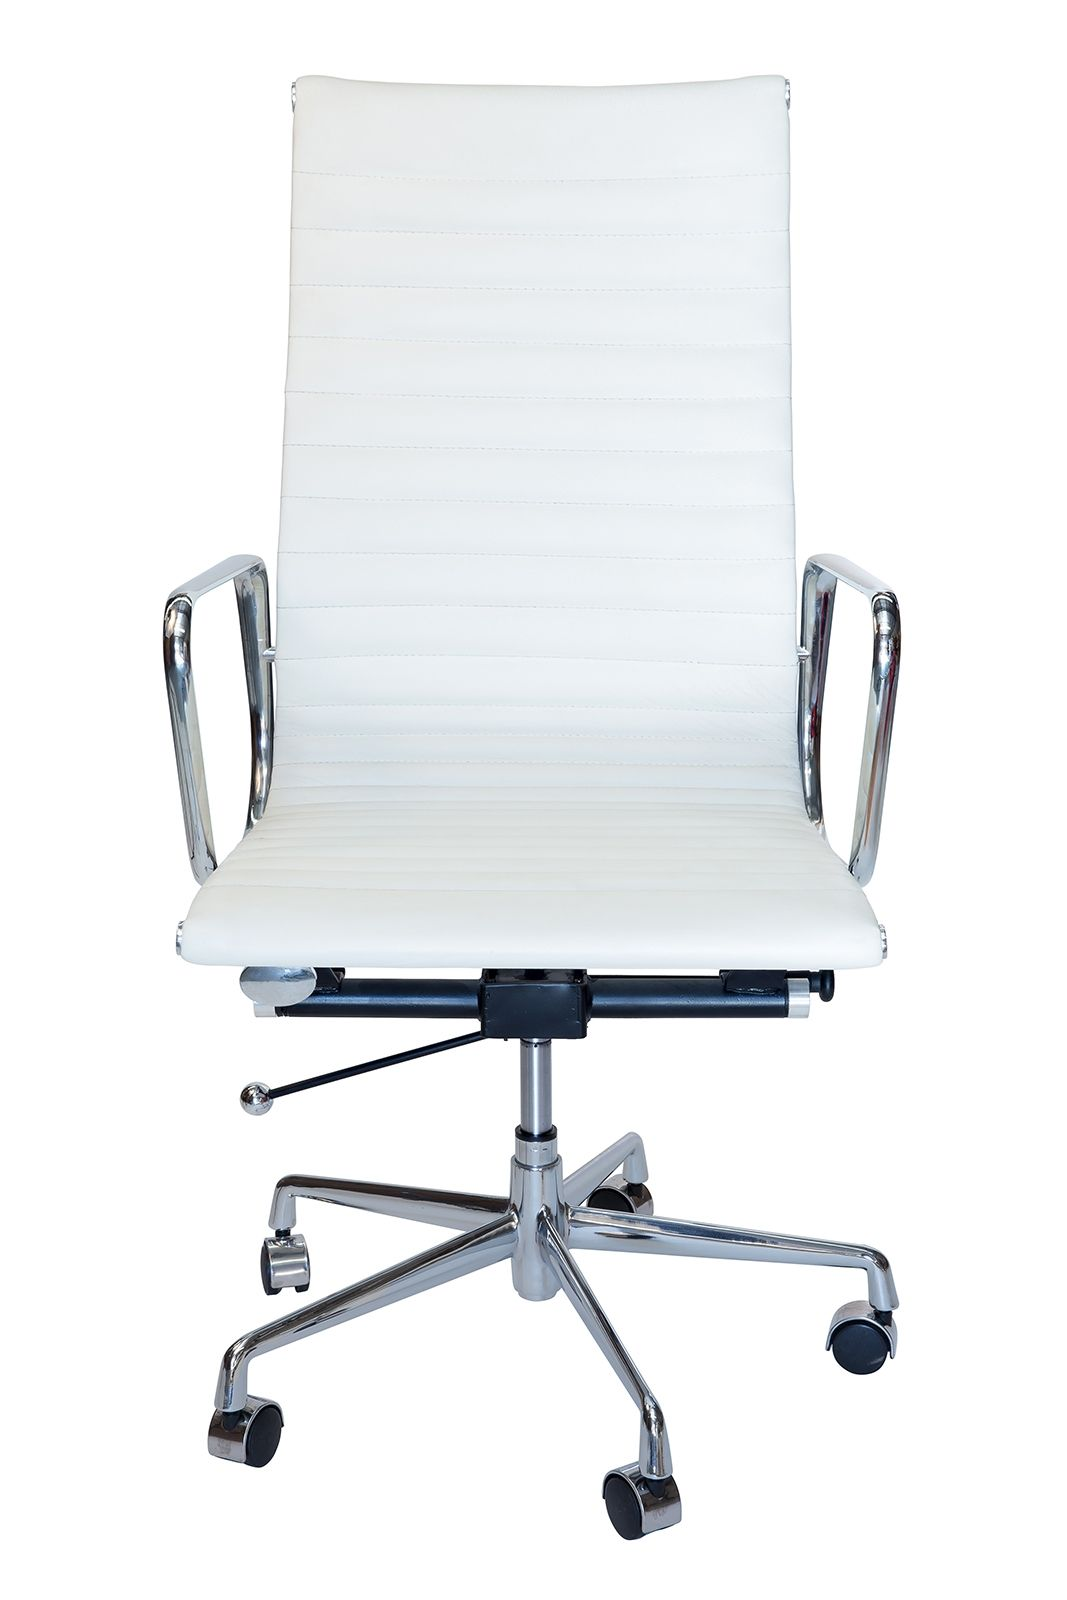 Replica Eames High Back Ribbed Leather Executive Desk / Office Chair | White